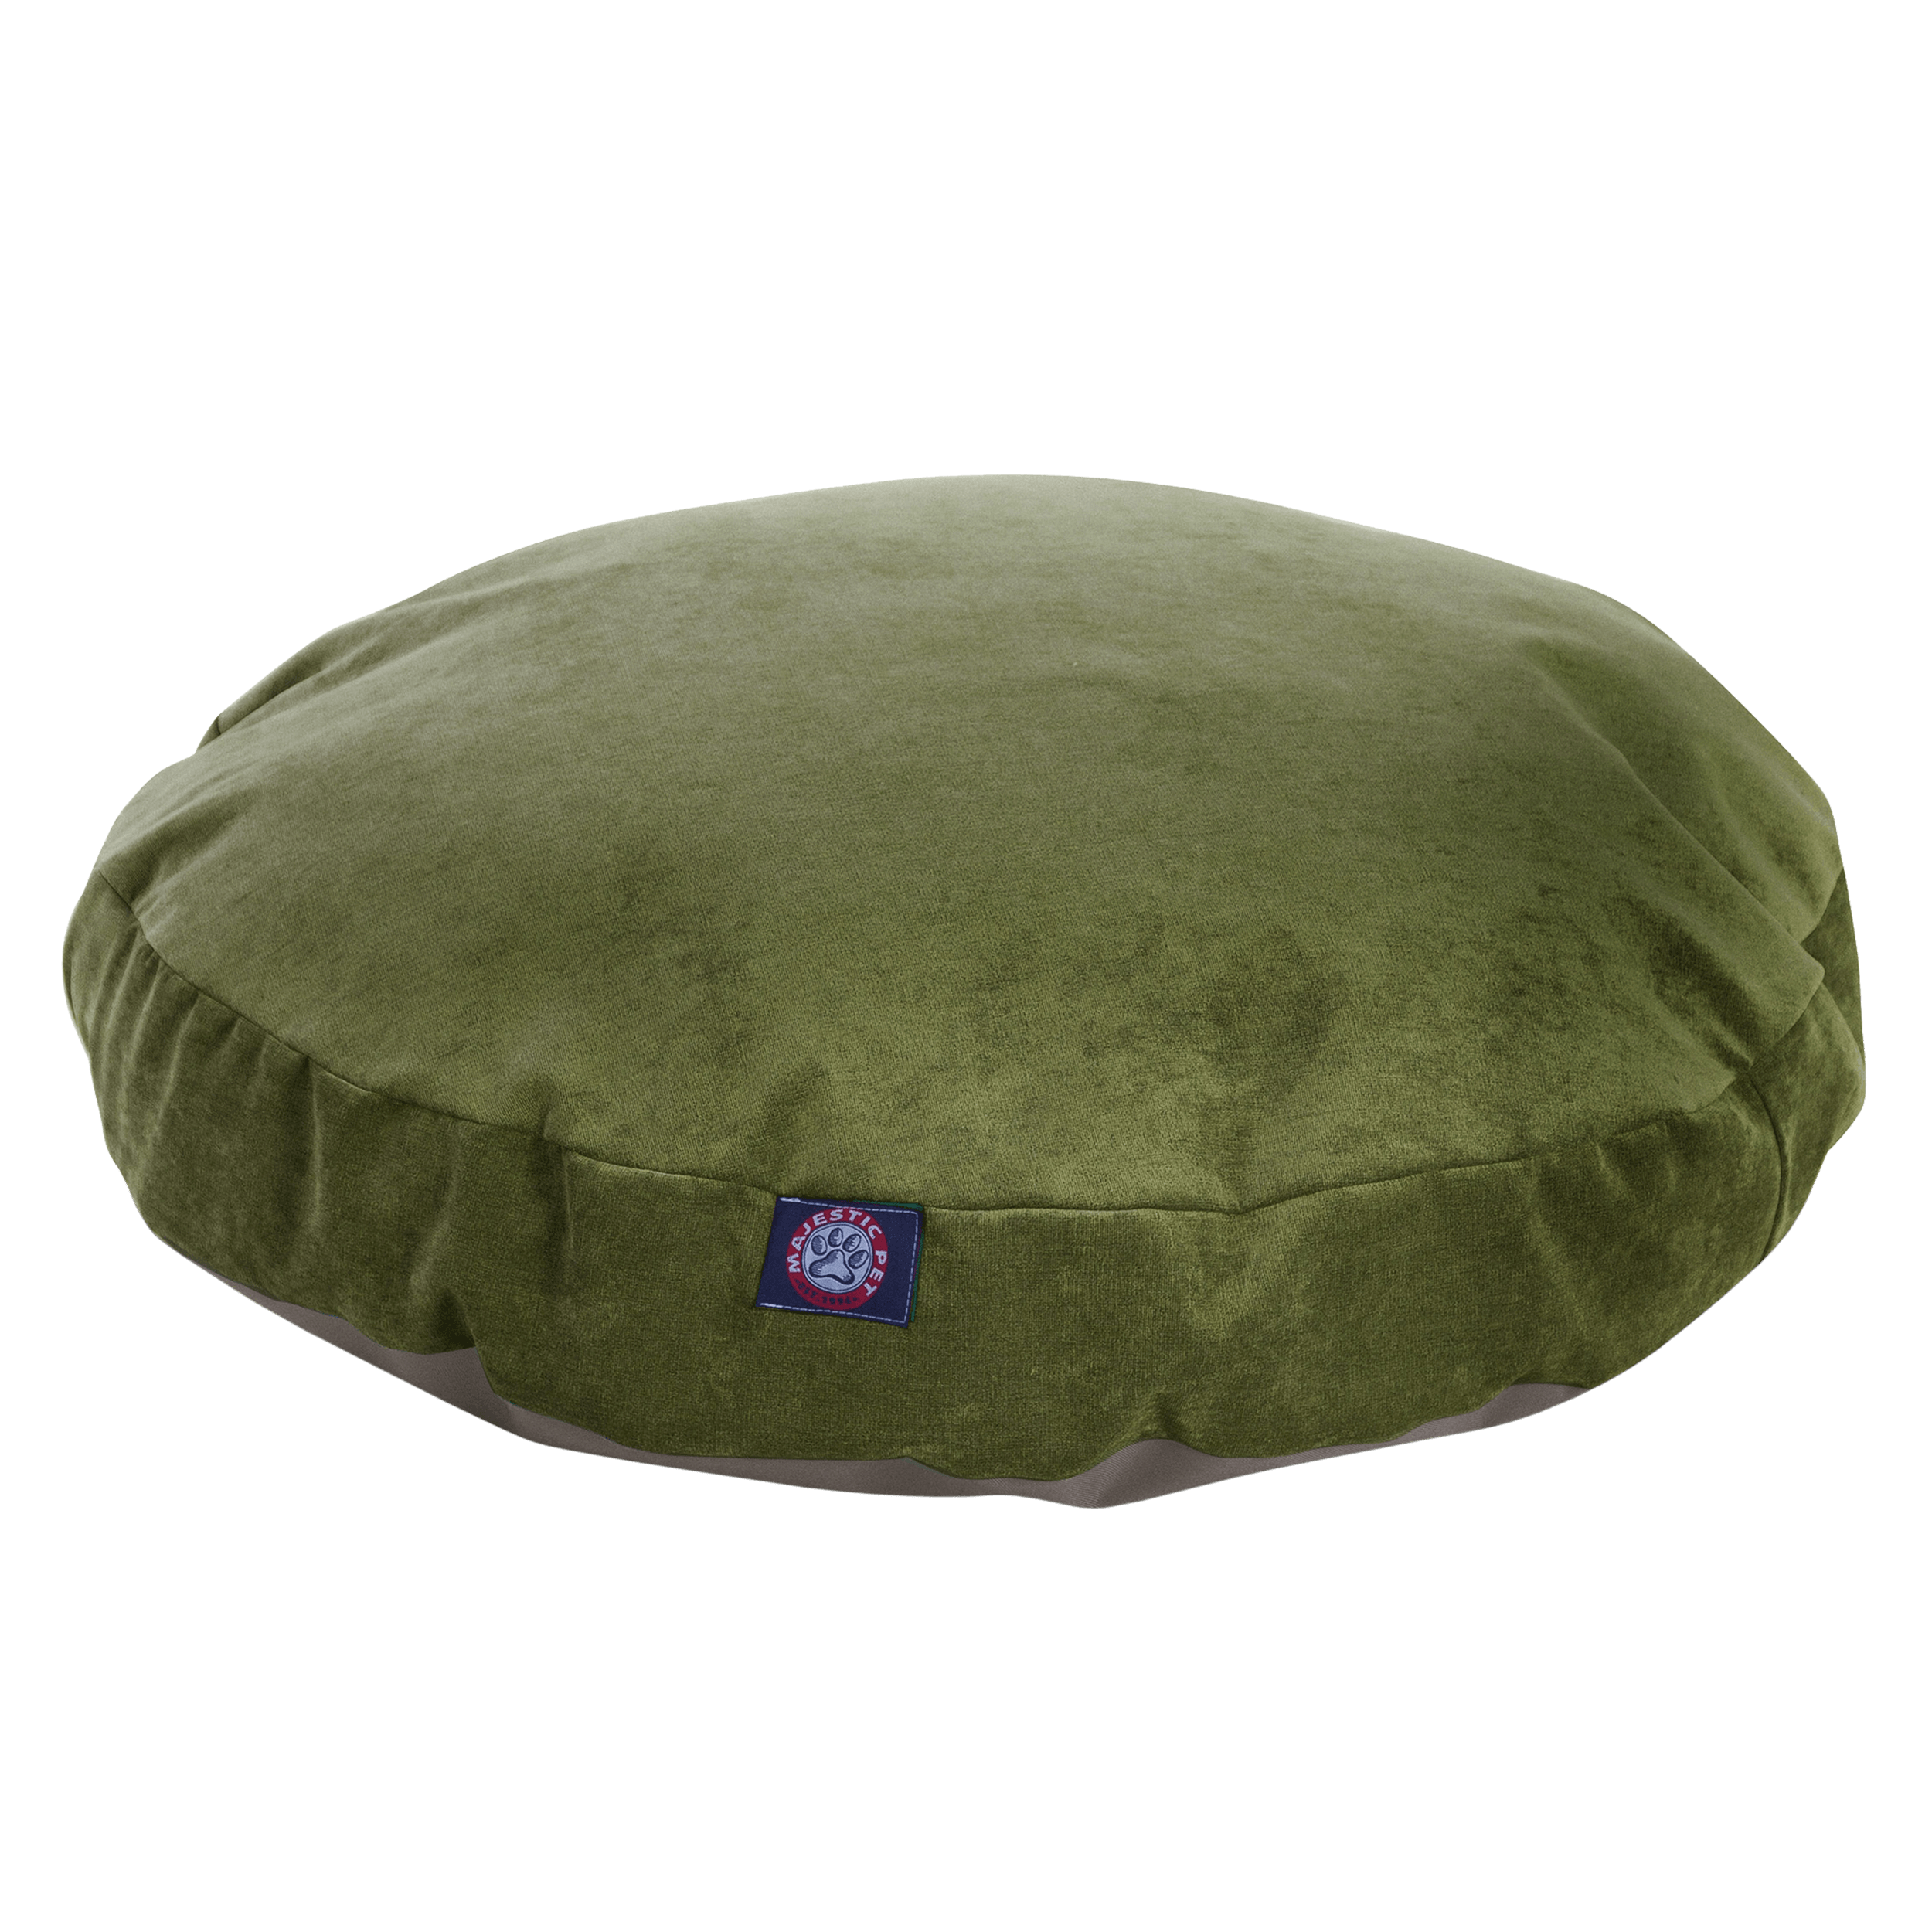 Majestic Pet Villa Round Dog Bed Velvet Removable Cover Machine Washable